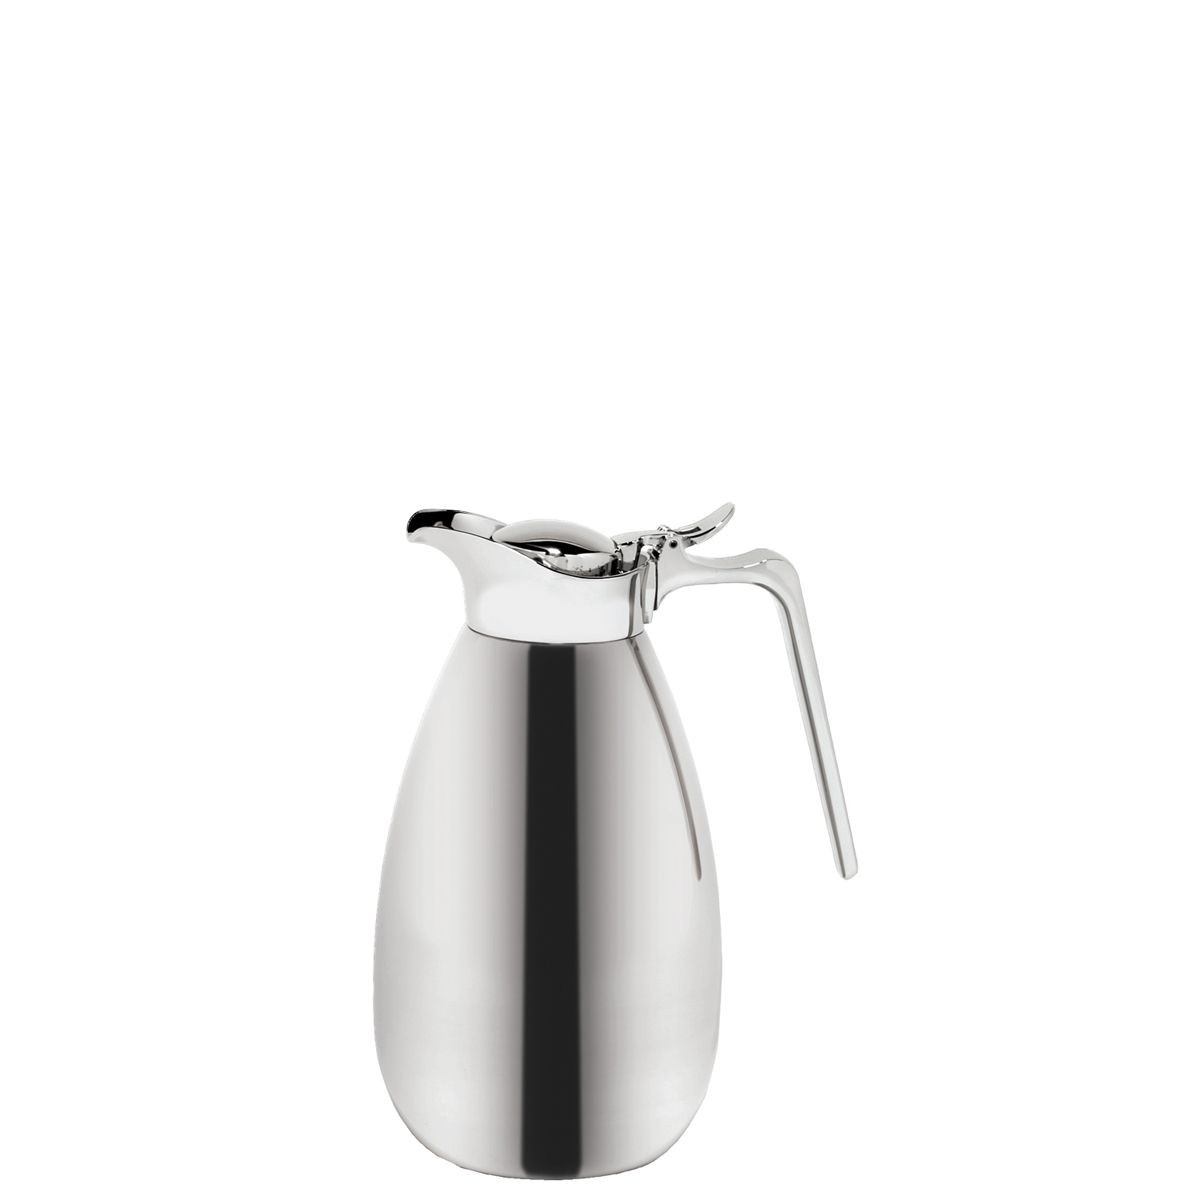 Service Ideas MEVC1000 Elite Touch Polished Stainless Steel Server, 1 Liter